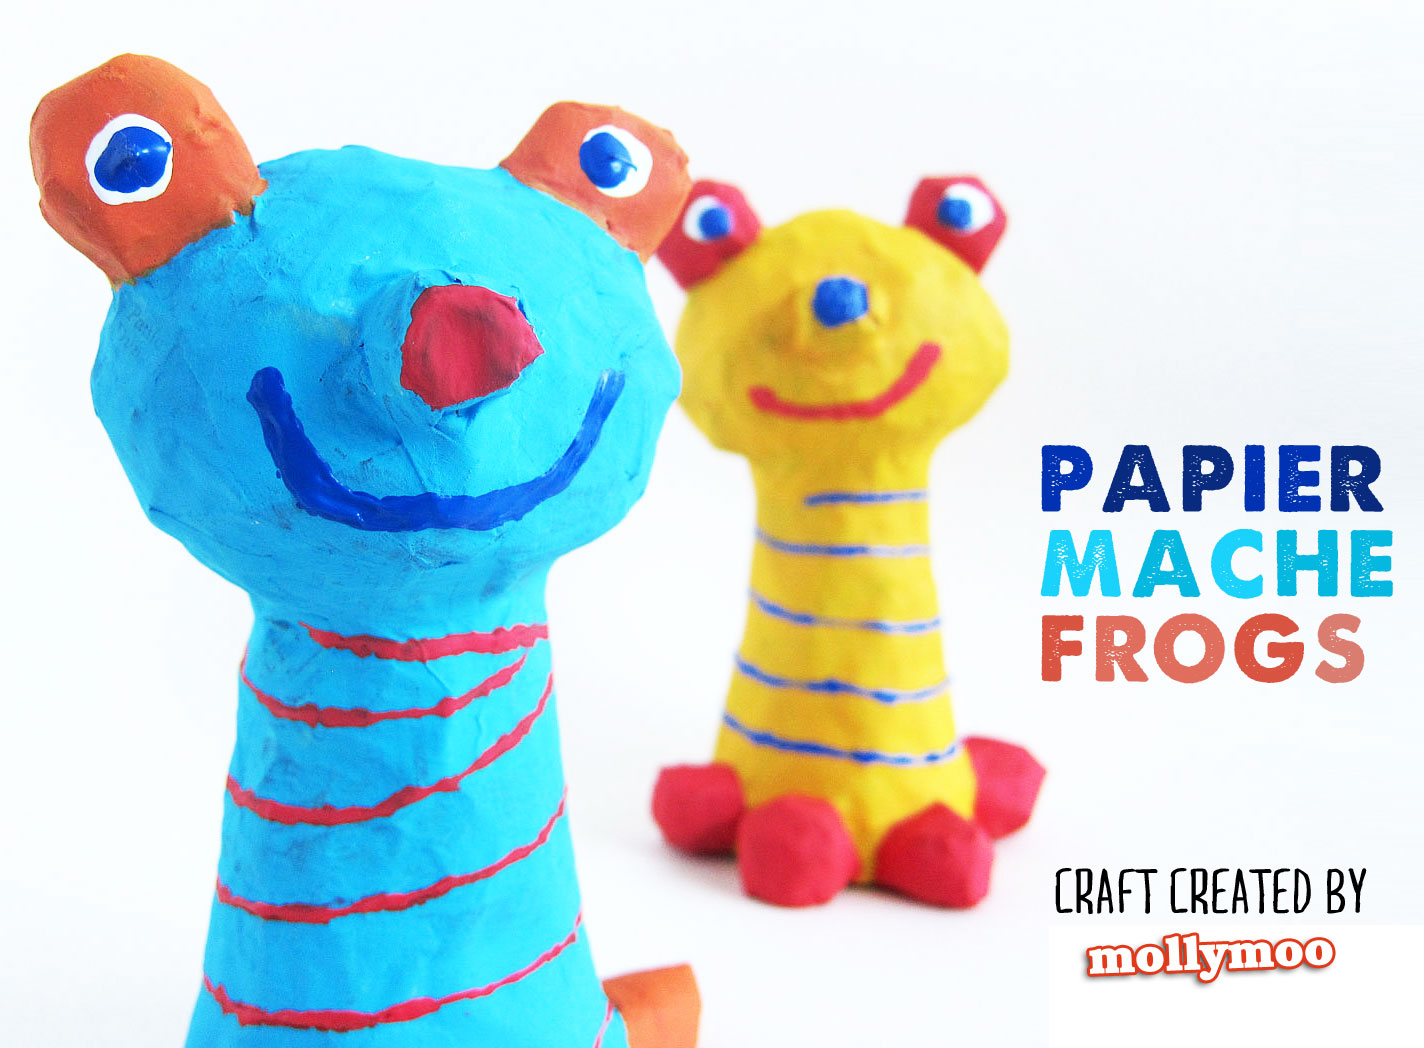 mollymoocrafts papier mache crafts for kids frog to On paper mache kids crafts